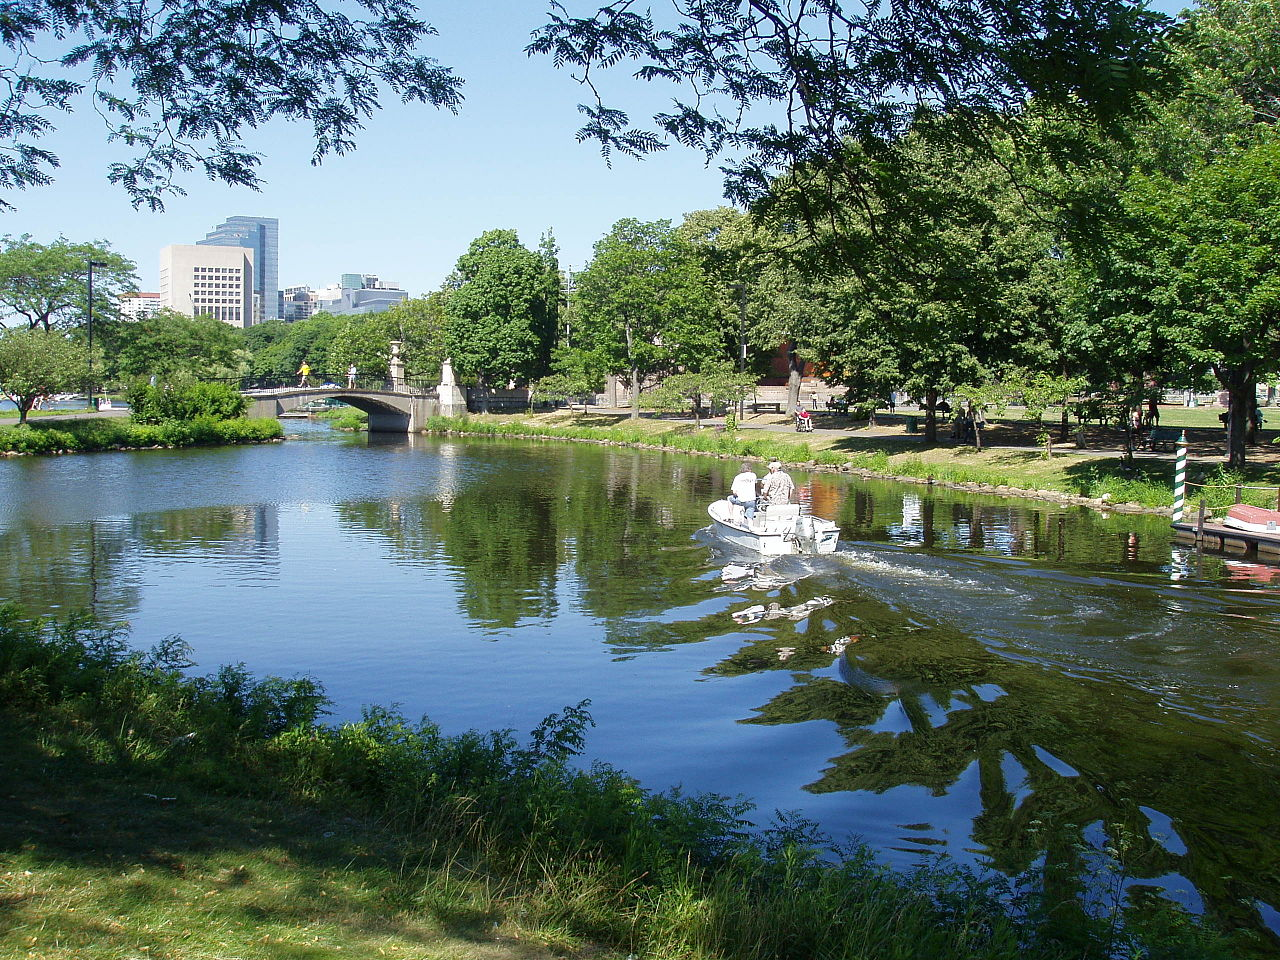 http://commons.wikimedia.org/wiki/File:Charles_River_Esplanade,_Boston,_Massachusetts.JPG?uselang=fr